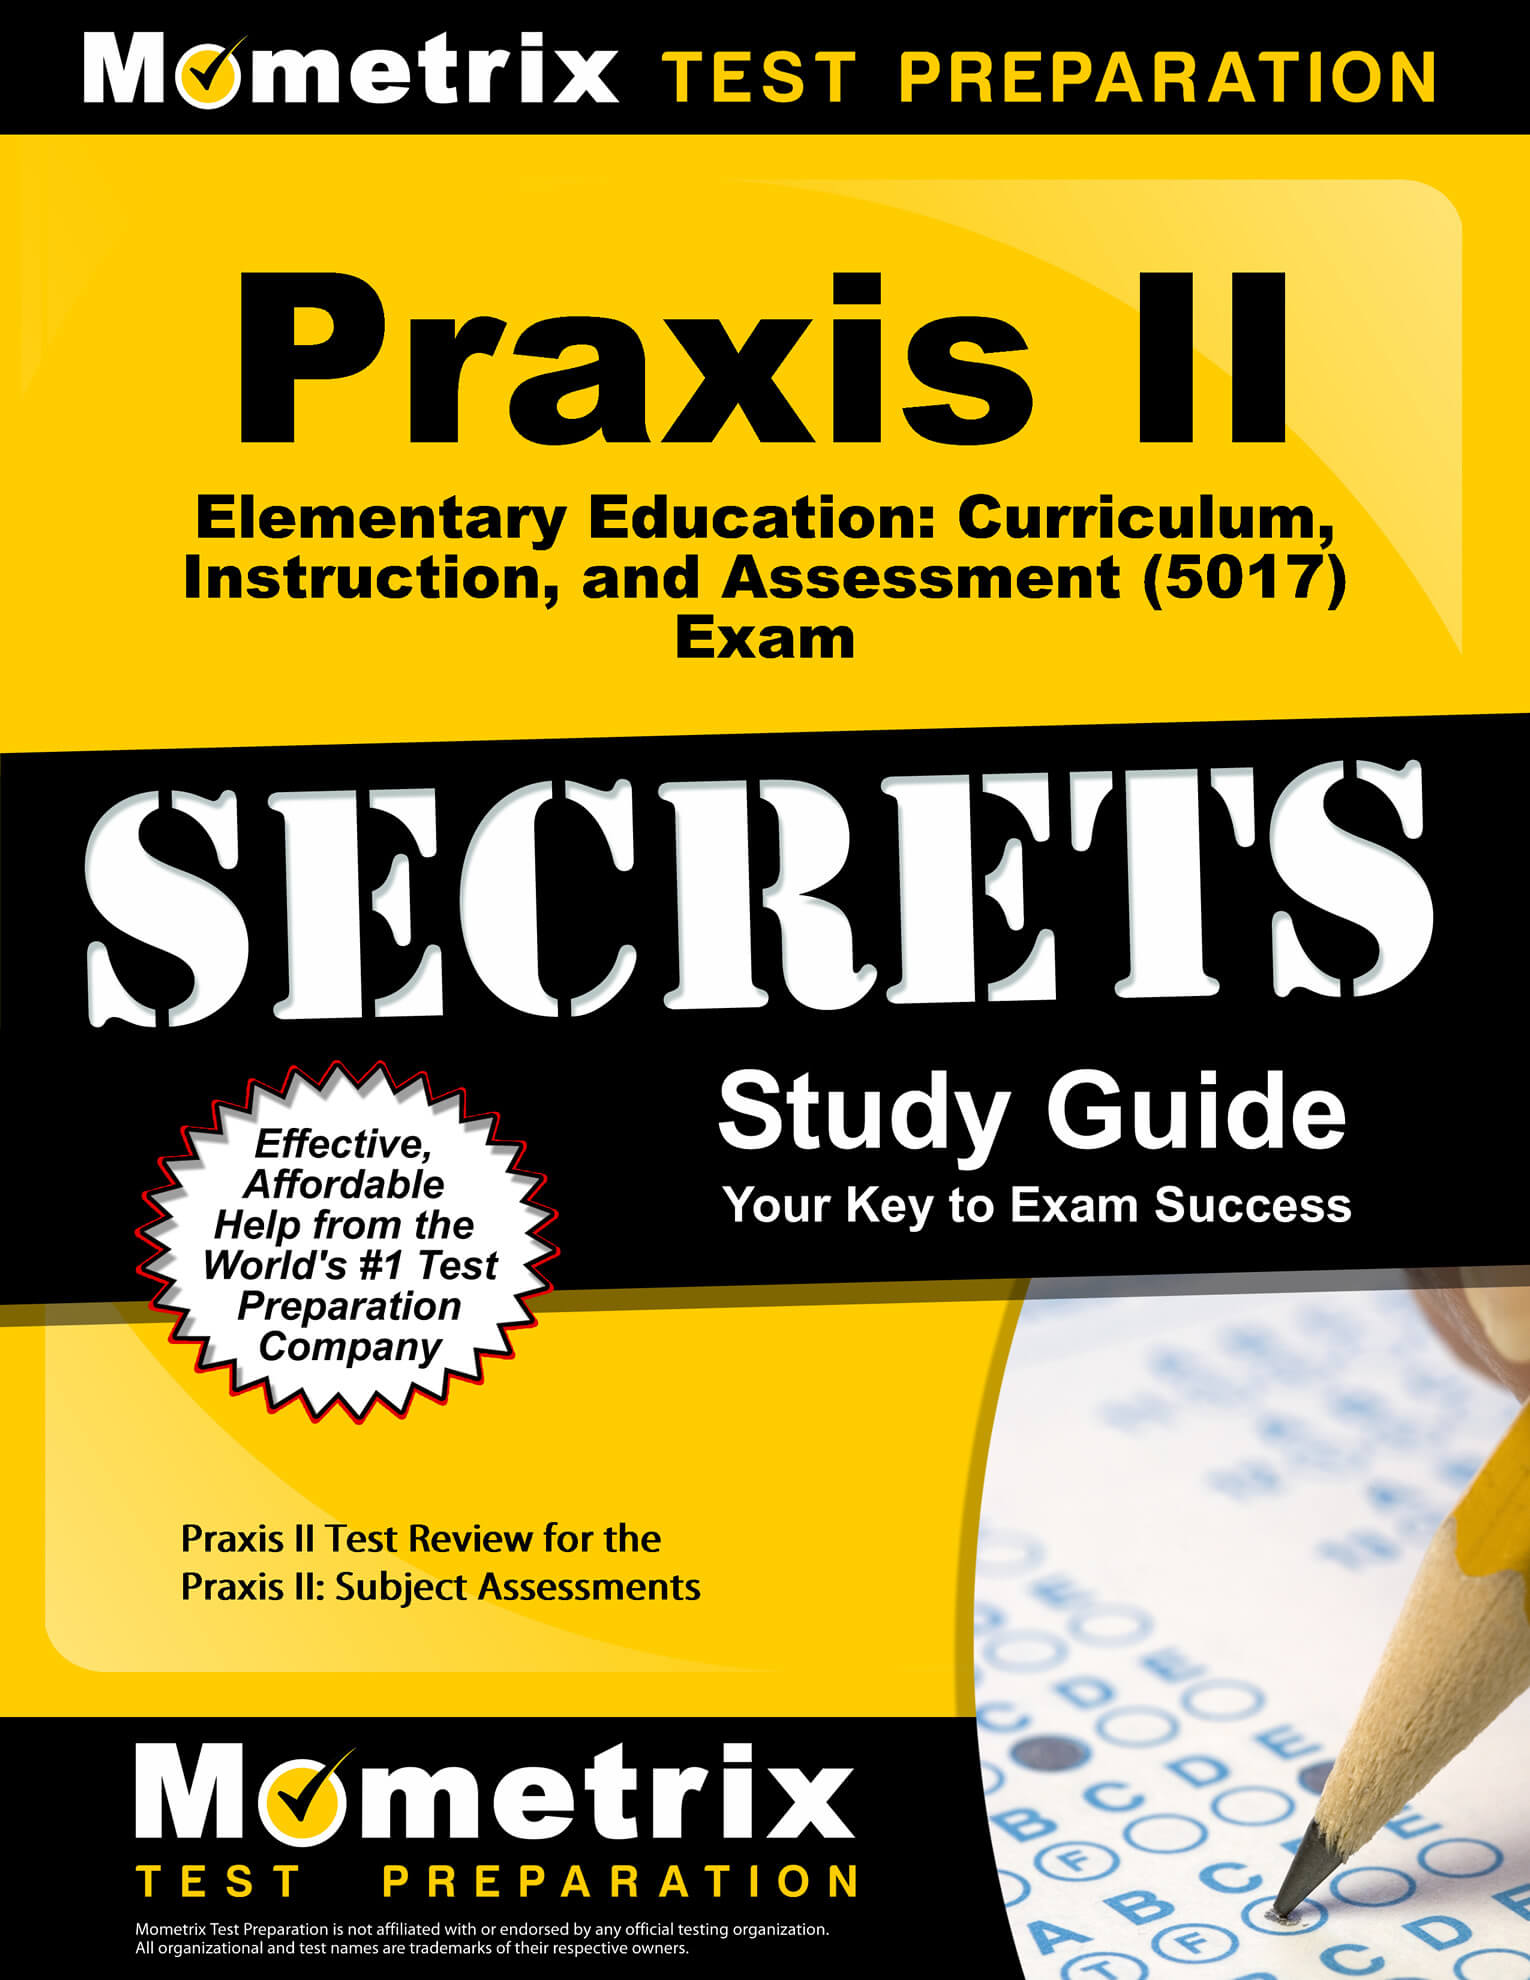 Praxis II Elementary Education: Curriculum, Instruction, and Assessment Study Guide